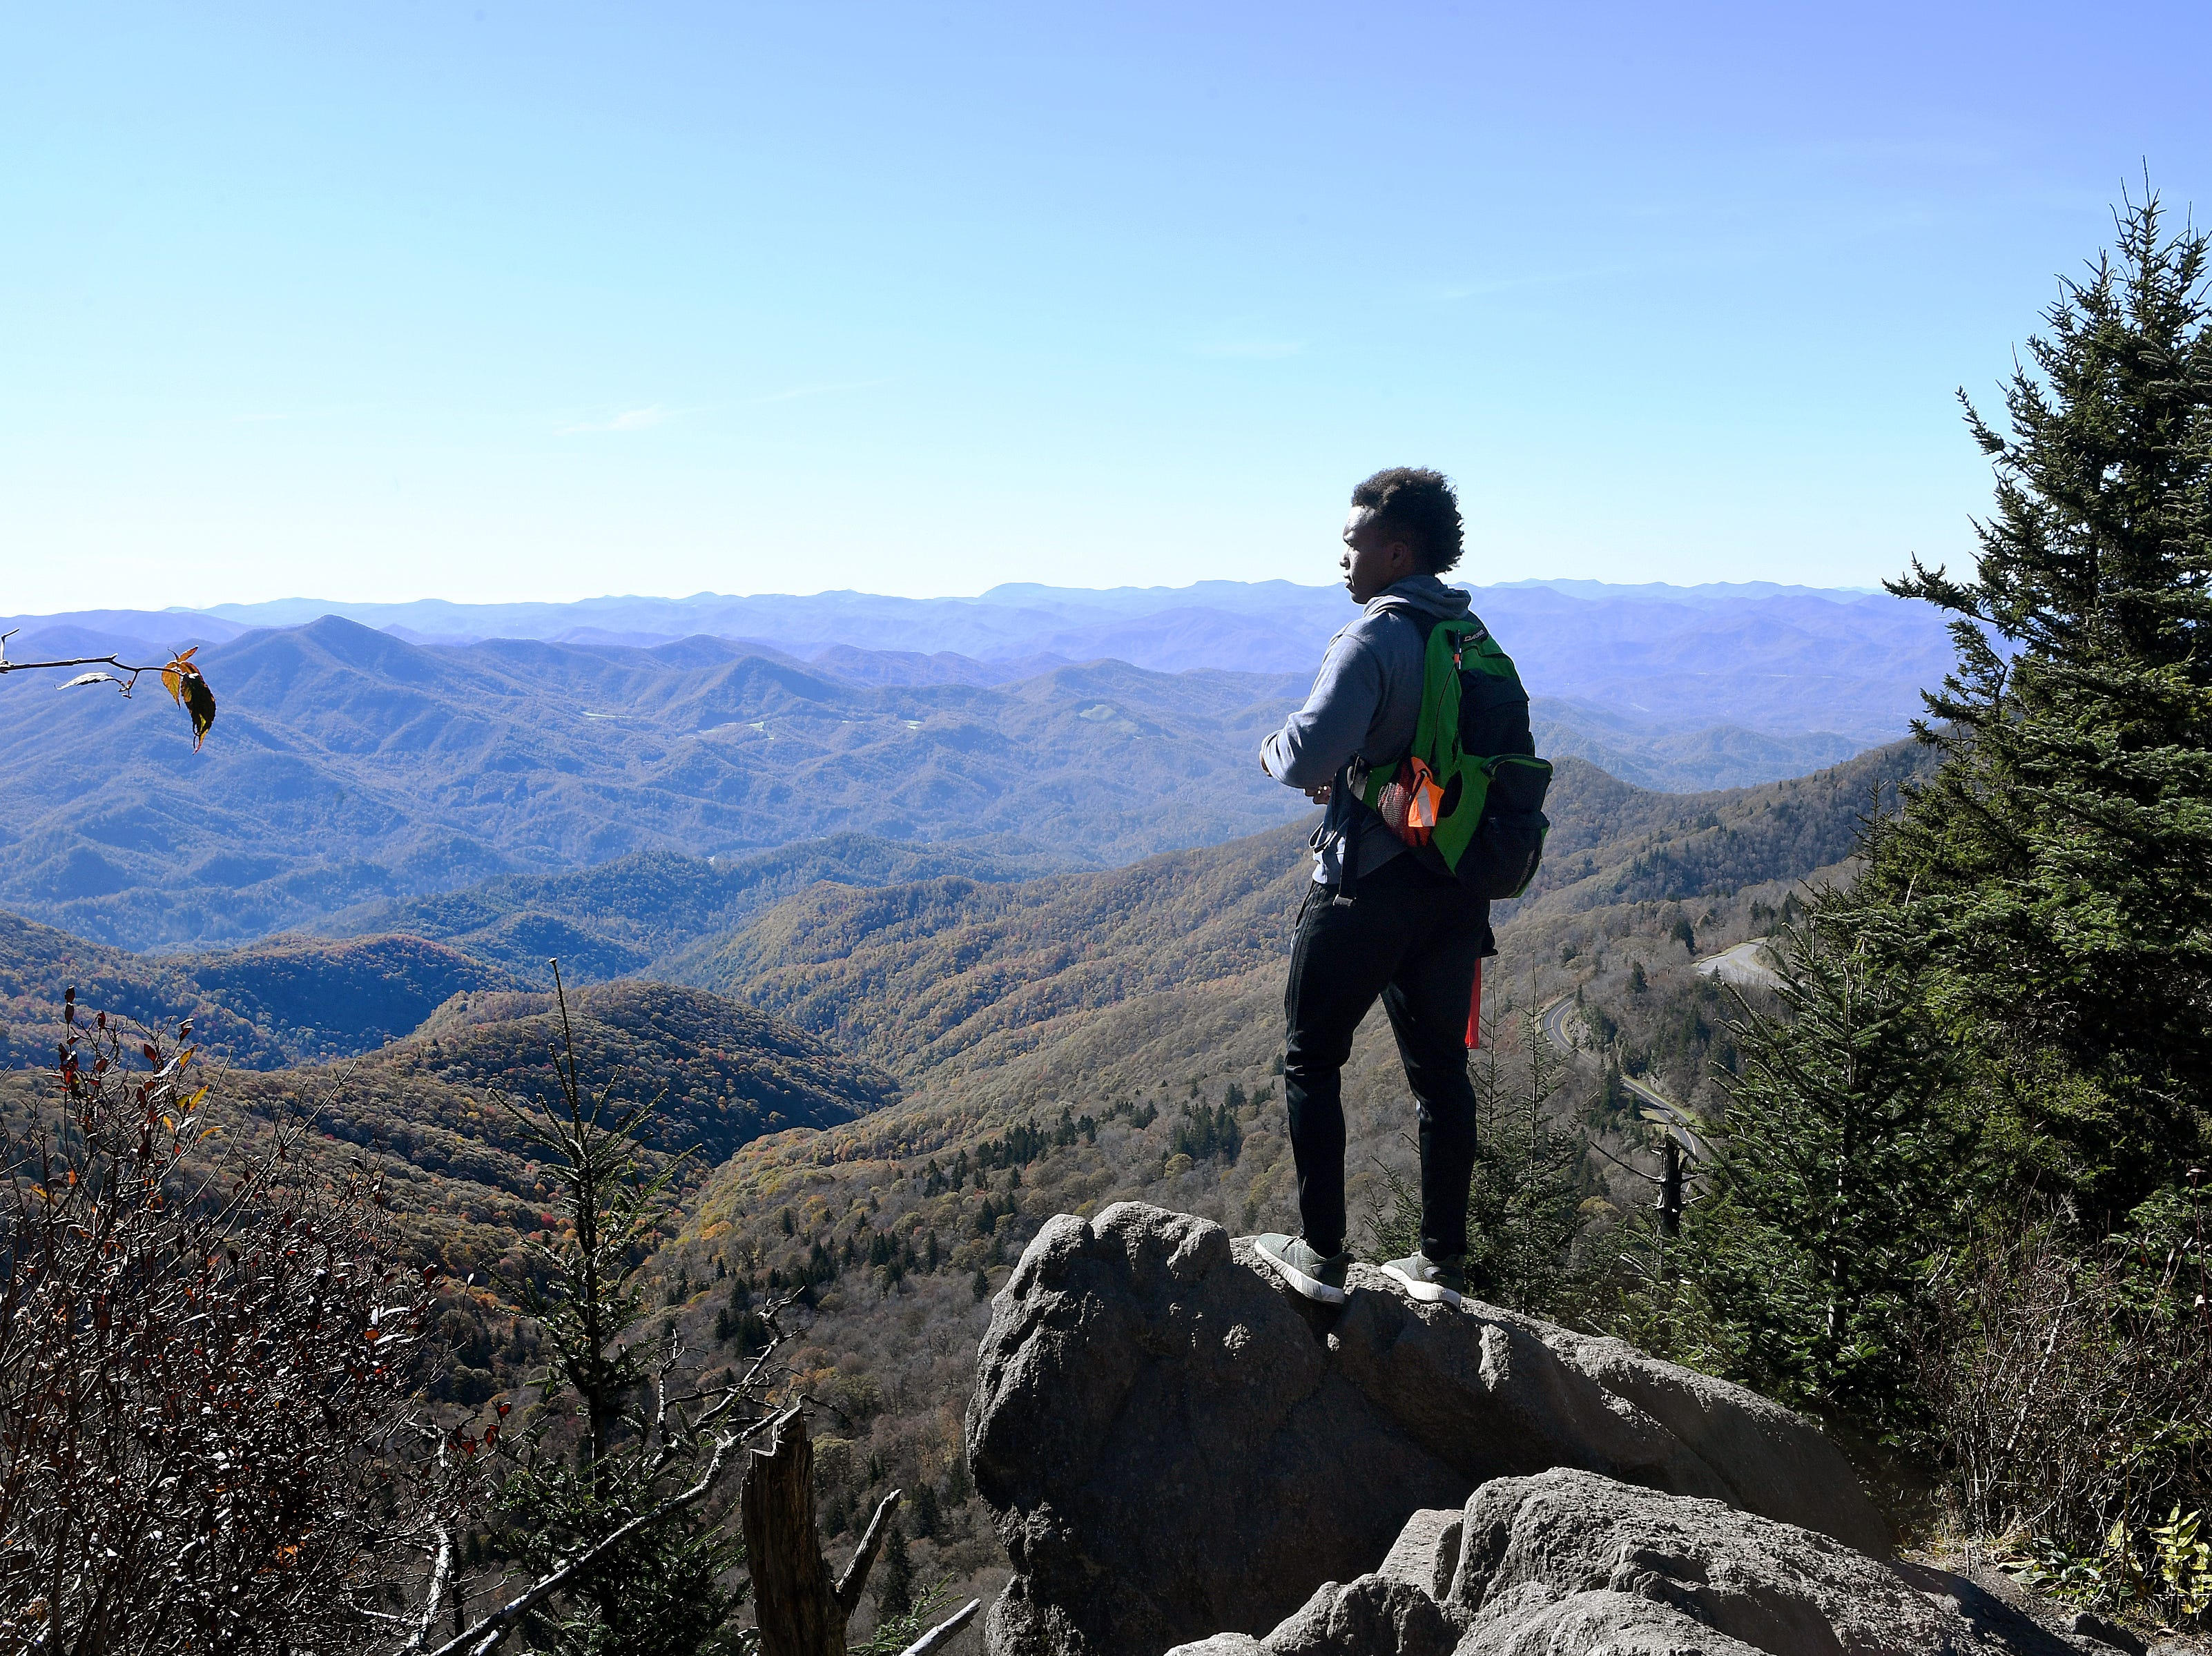 Joshua Perkins takes in the view from the top of Waterrock Knob on the Blue Ridge Parkway in Maggie Valley as he hikes with Pathways to Parks on Tuesday, Oct. 30, 2018. Pathways to Parks is an outdoors group that aims to get more people of color outside and enjoying National Parks.